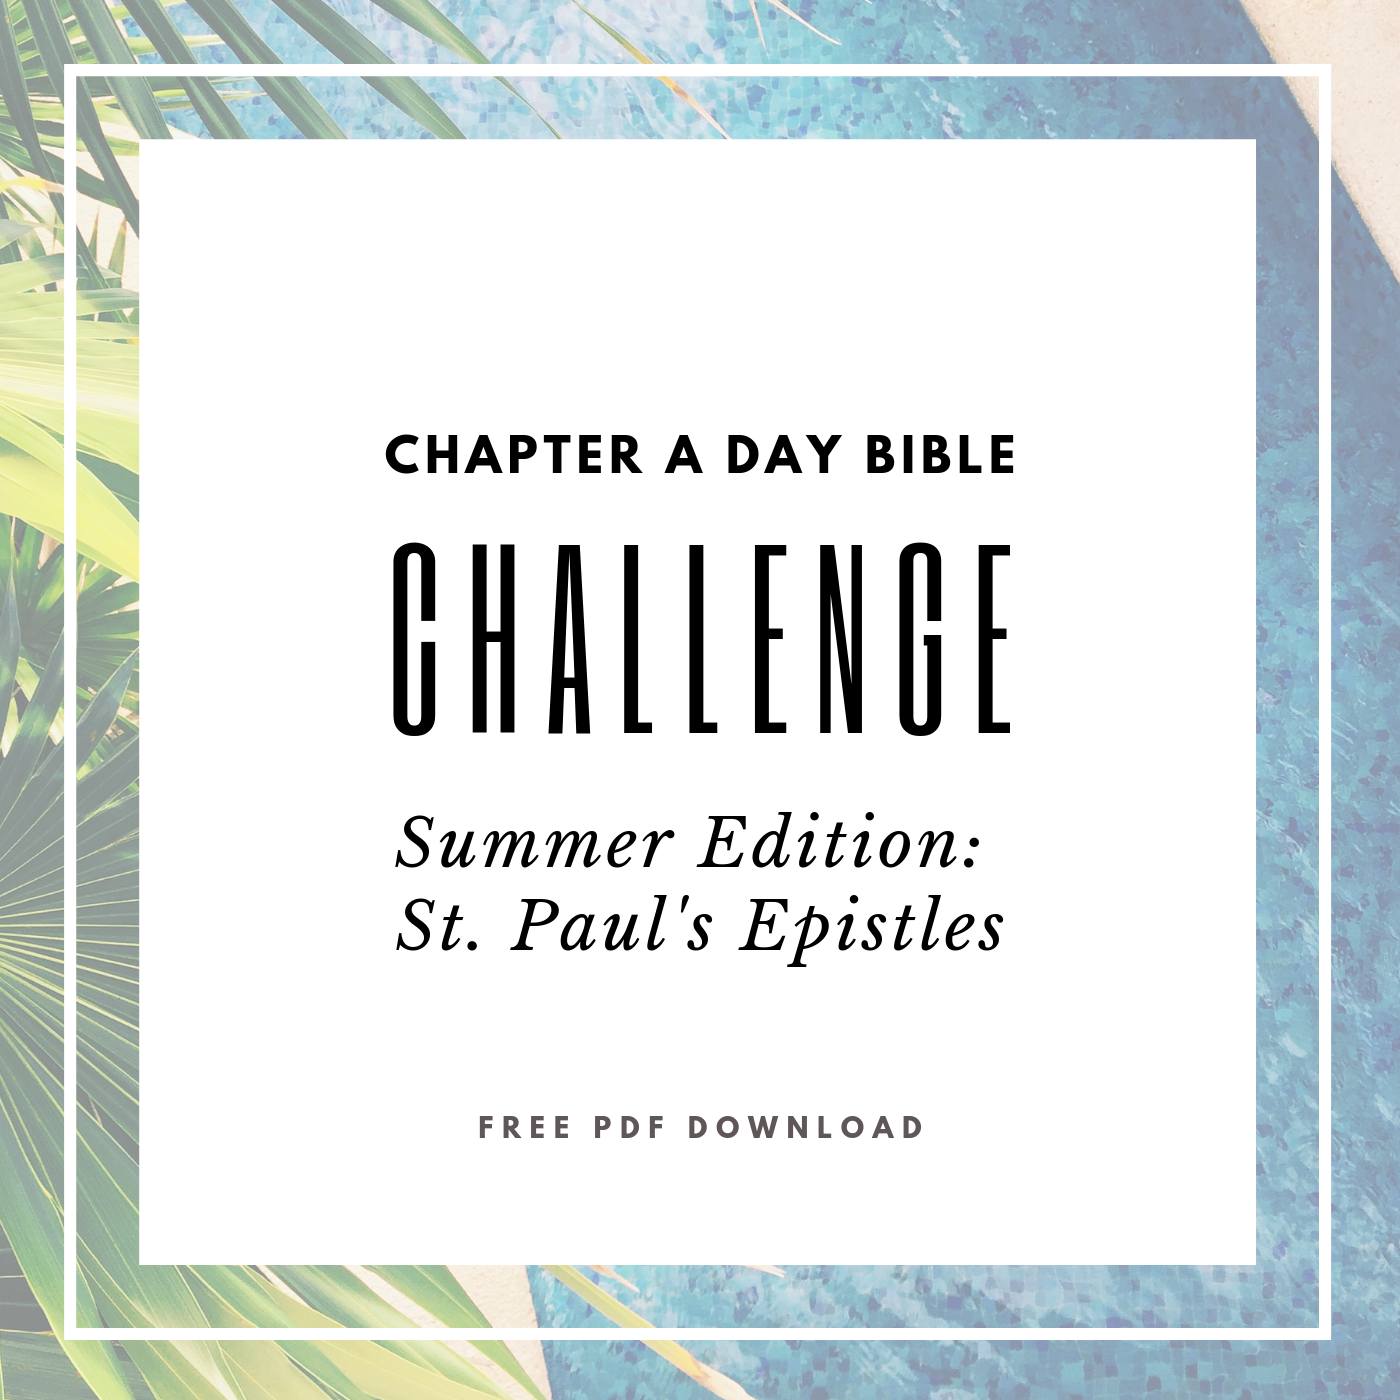 Chapter A Day Bible Challenge - Summer Edition